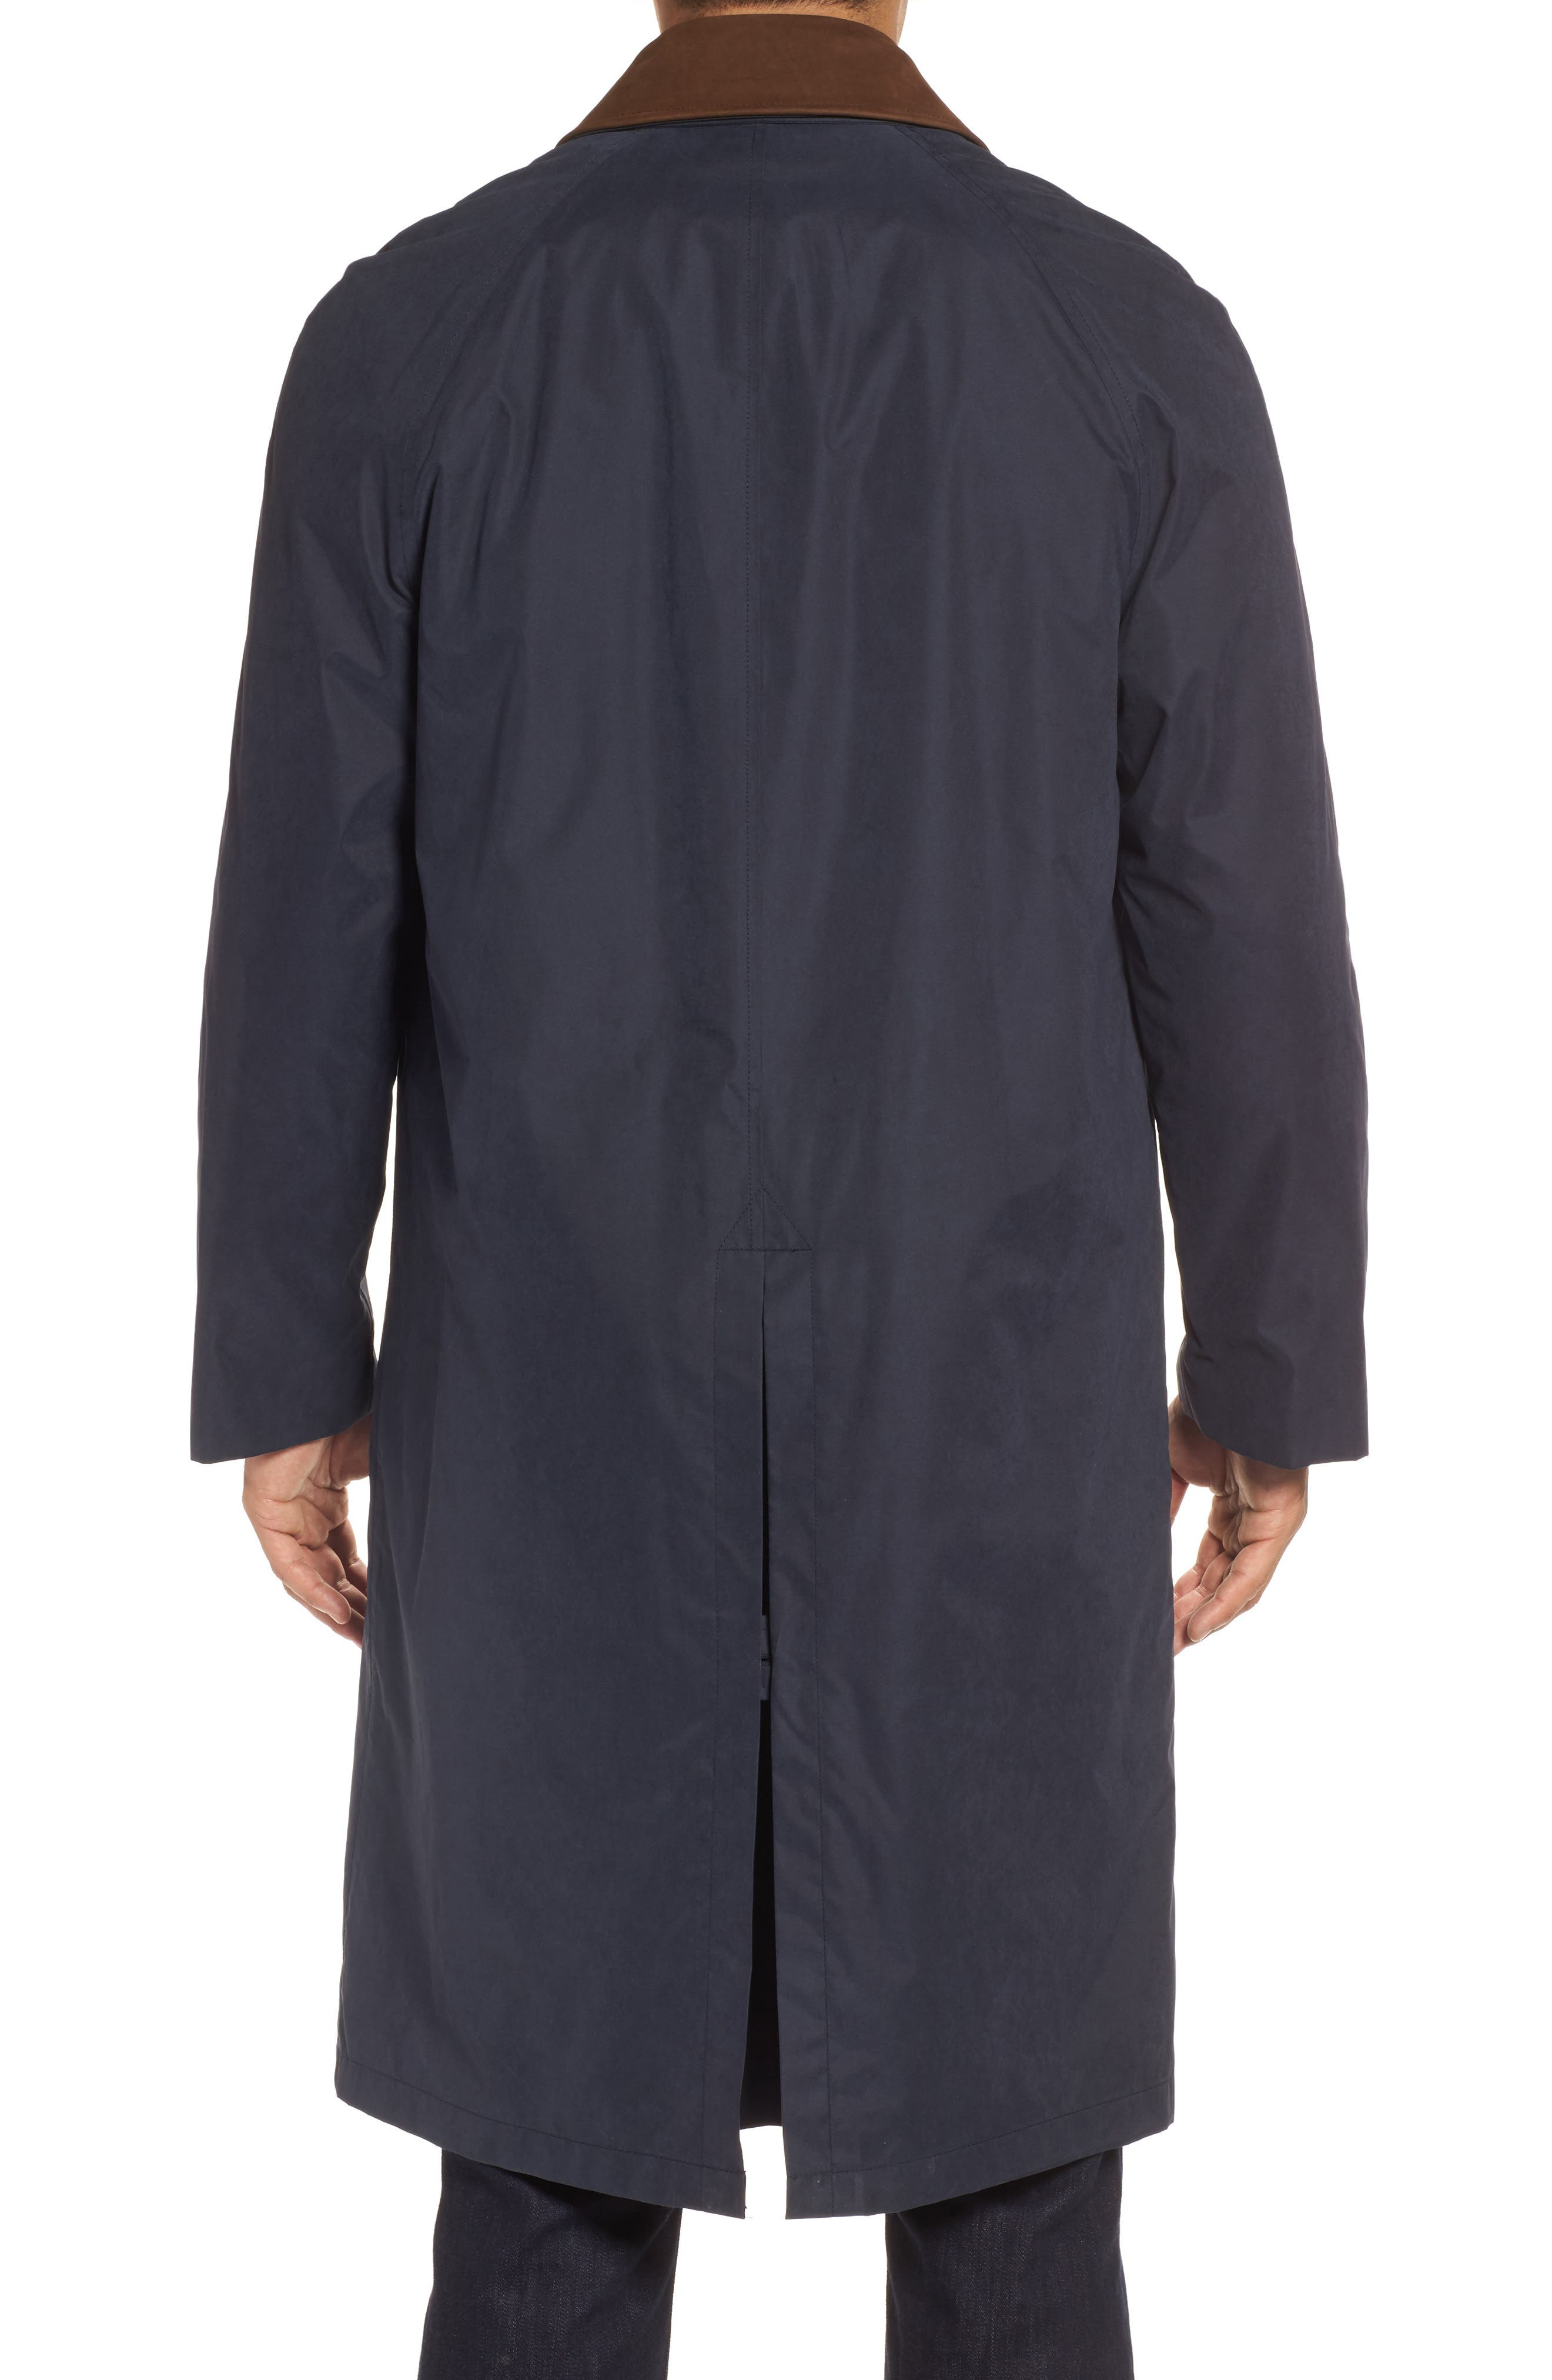 Lawrence Classic Fit Rain Coat,                             Alternate thumbnail 2, color,                             Navy